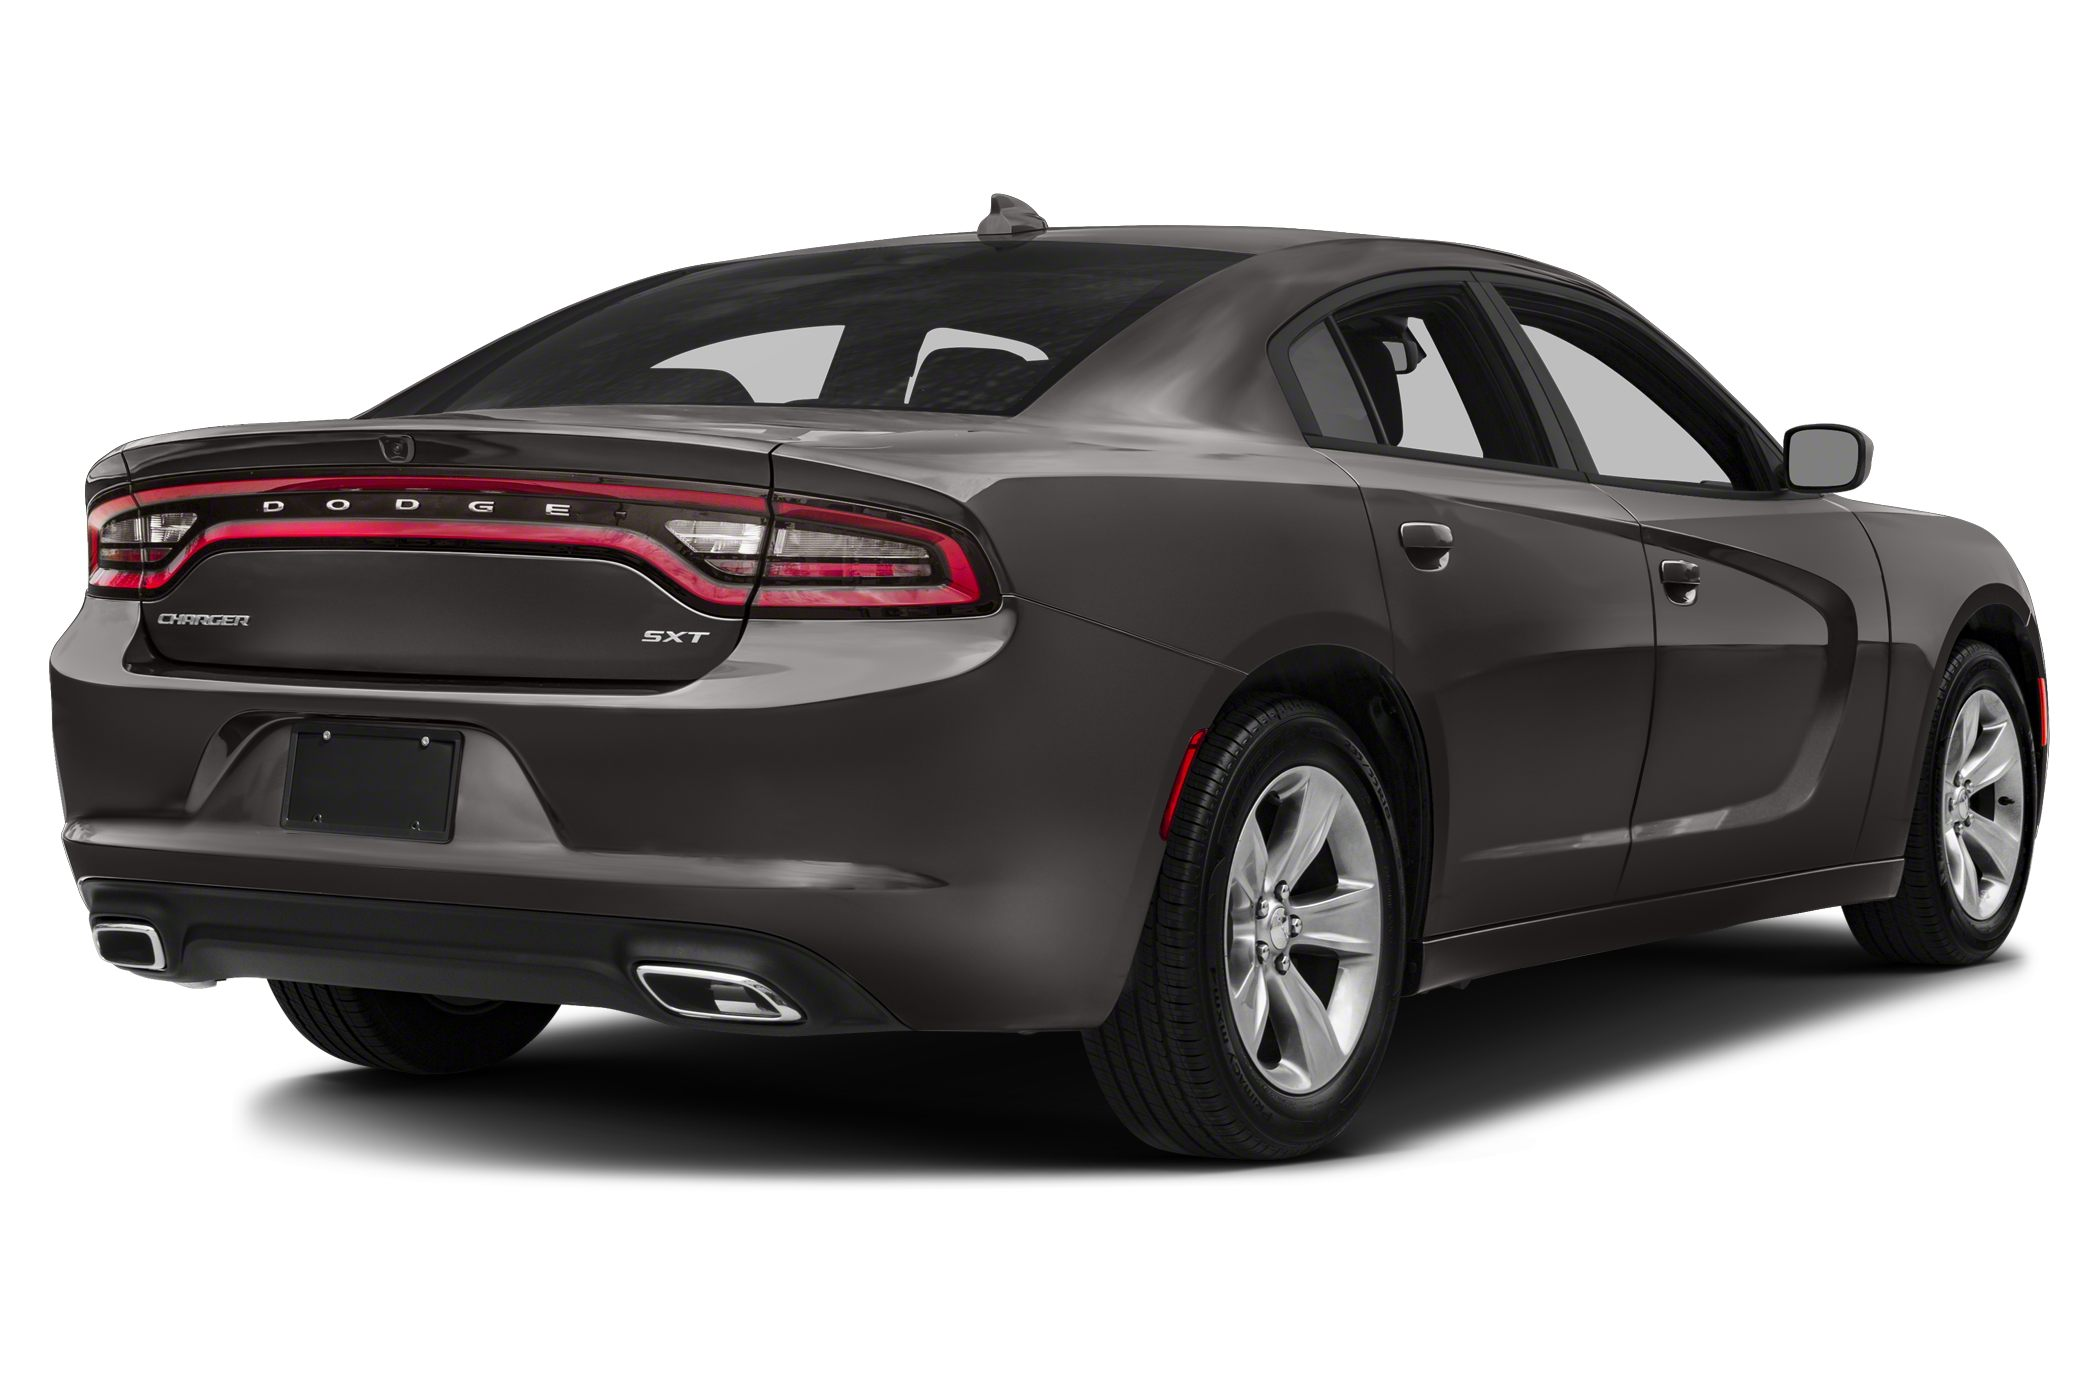 2016 Dodge Charger SXT Grey New Price Clean CARFAX 3119 HighwayCity MPG 2016 Dodge Charger SXT